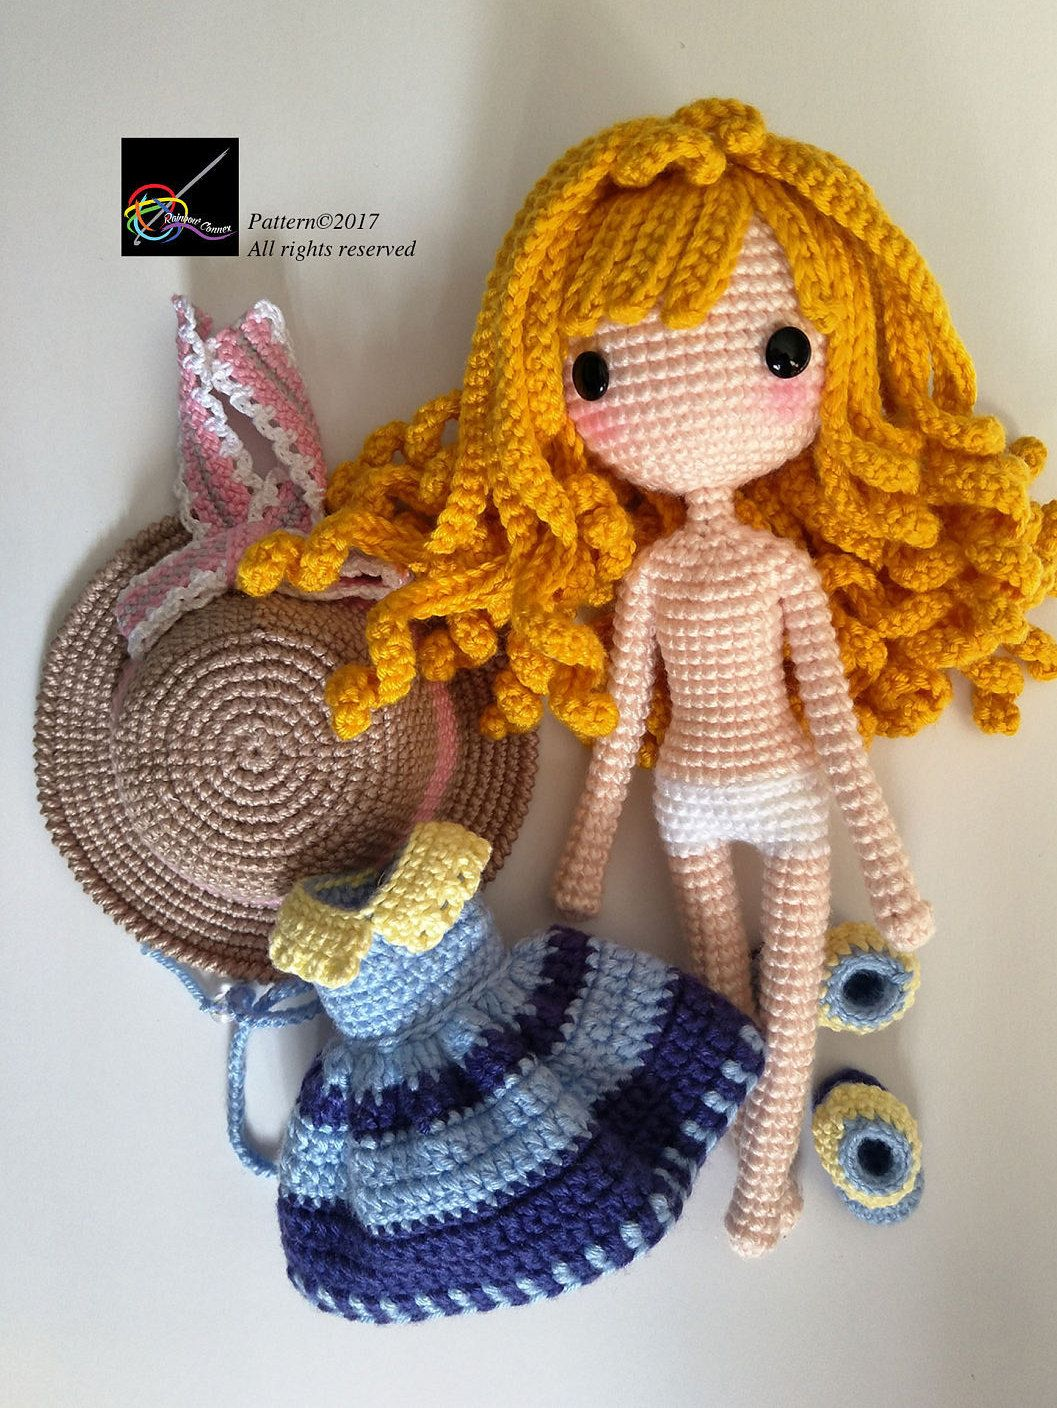 Crochet Doll Pattern Best Inspiration Ideas